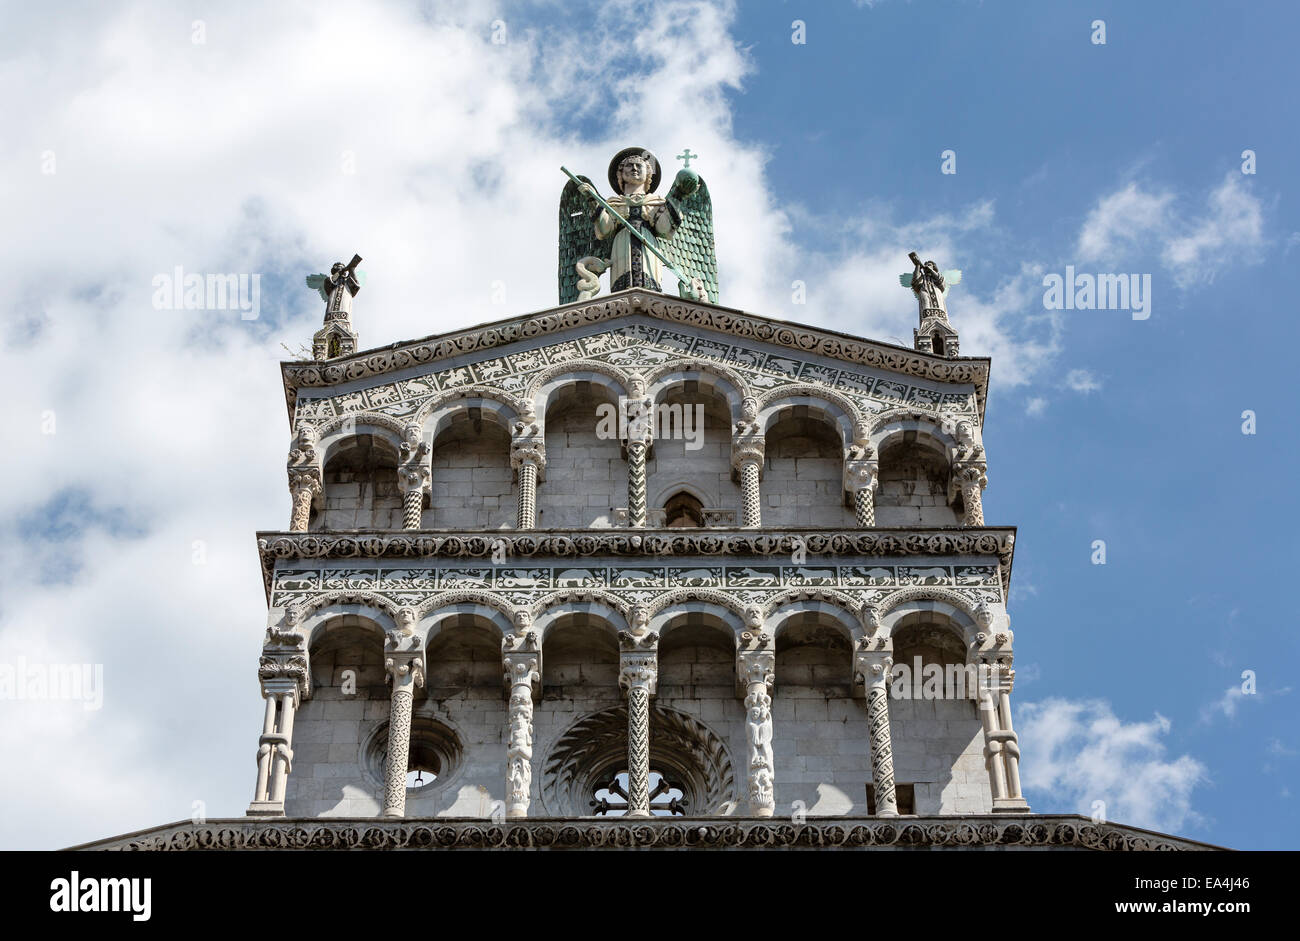 San Michele in Foro, Saint Michael Church, Lucca with the statue of St. Michael the Archangel on top. - Stock Image